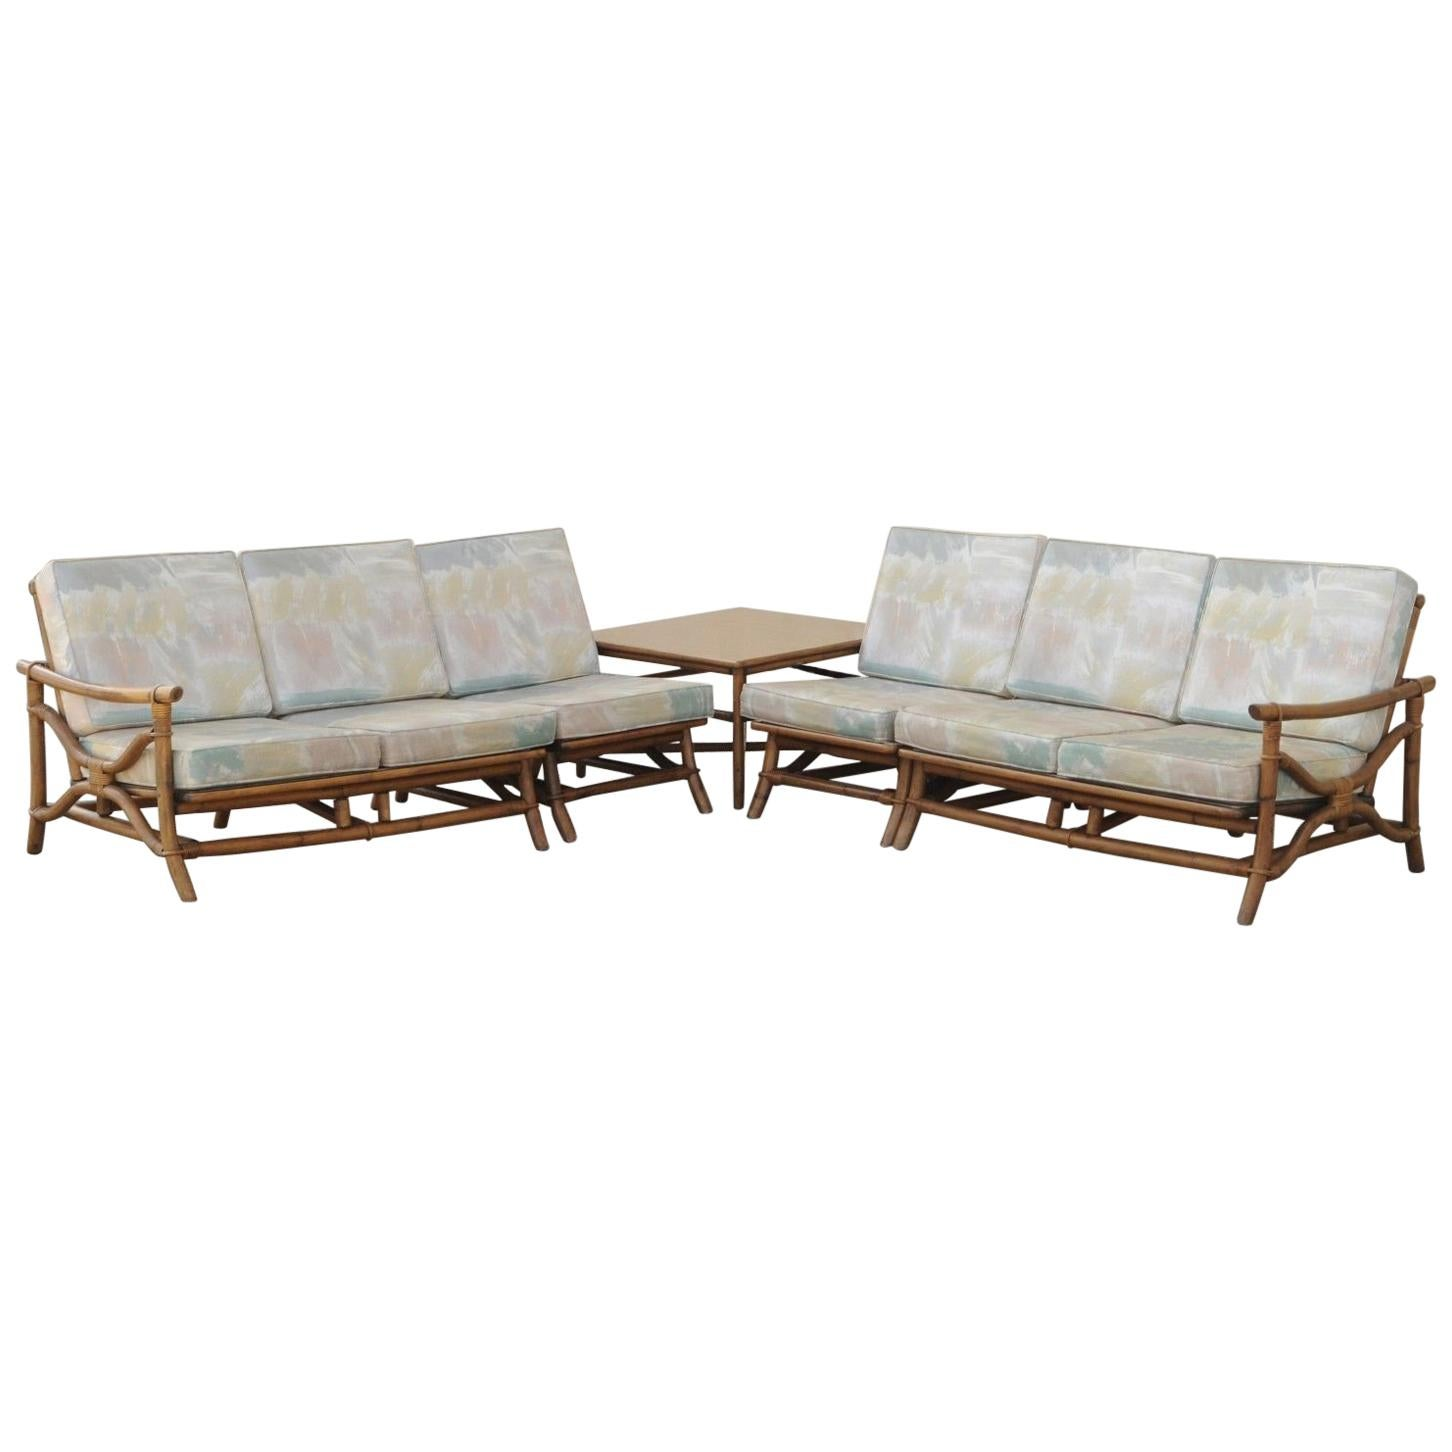 bamboo couch and chairs beach for big tall people mid century ficks reed 5 piece rattan tiki set sofa table pair sale